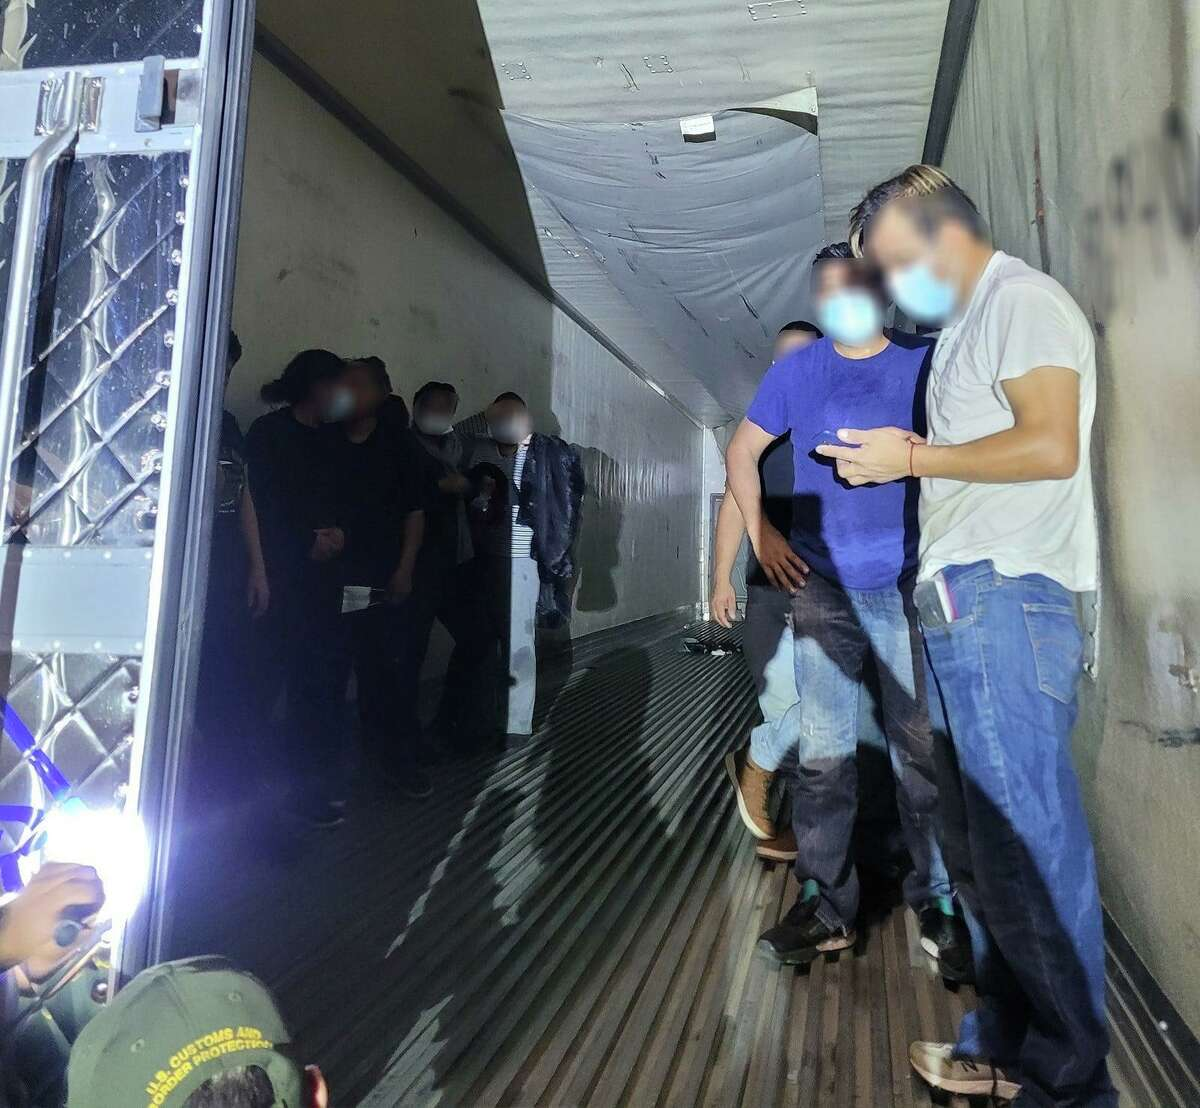 U.S. Border Patrol agents said they discovered 21 migrants inside a refrigerated trailer on Sept. 19 at the Interstate 35 checkpoint.